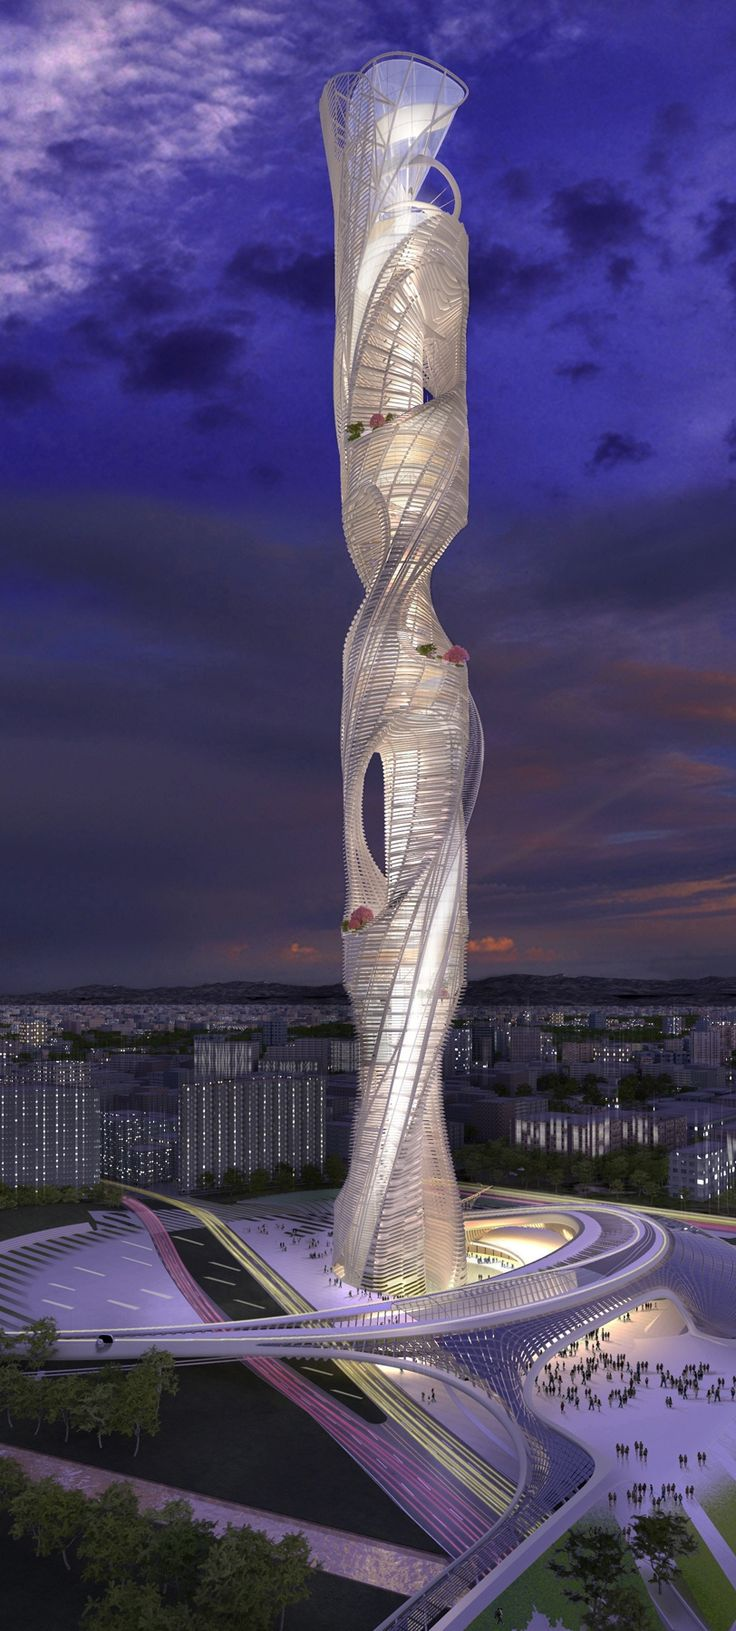 Taiwan Tower Conceptual Design Competition, Taichung, China  #architecture, luxury houses, interior design, #homedecorideas, luxury design, #exclusivedesign, homedecor For more inspirations visit us at http://www.bocadolobo.com/en/inspiration-and-ideas/